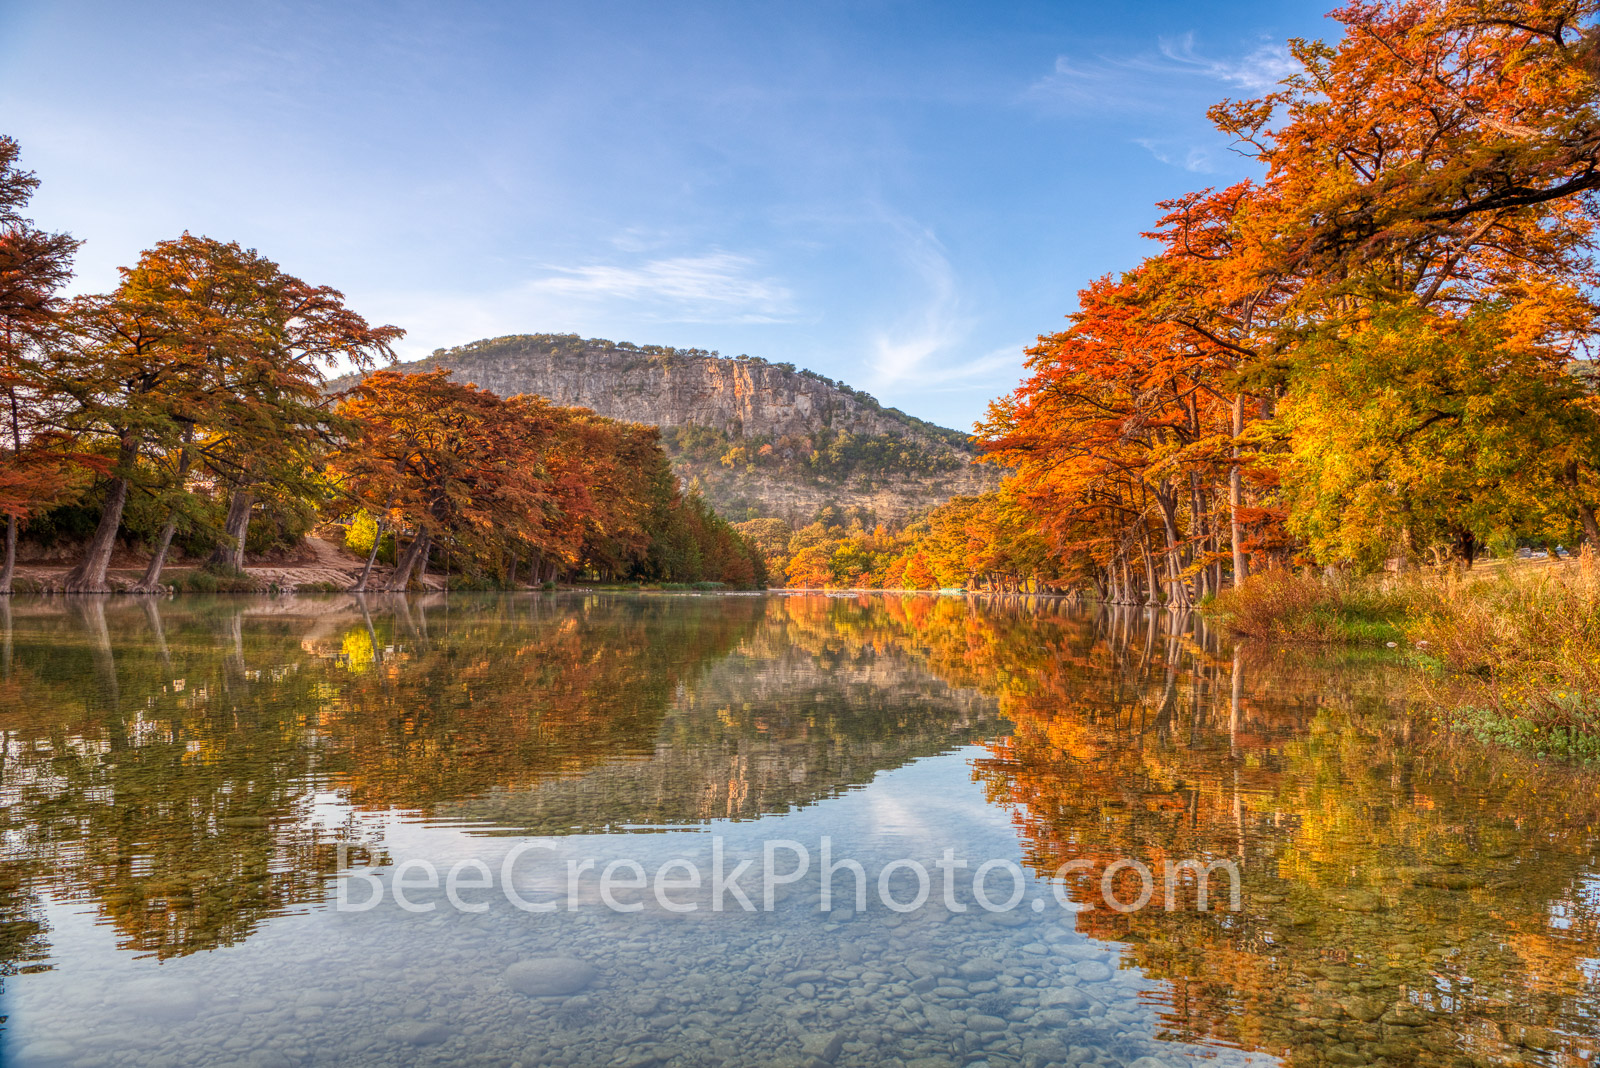 Autumn in the Texas Hill Country - Autumn in the Texas Hill Country along the Frio river as it flow through Garner State Park...